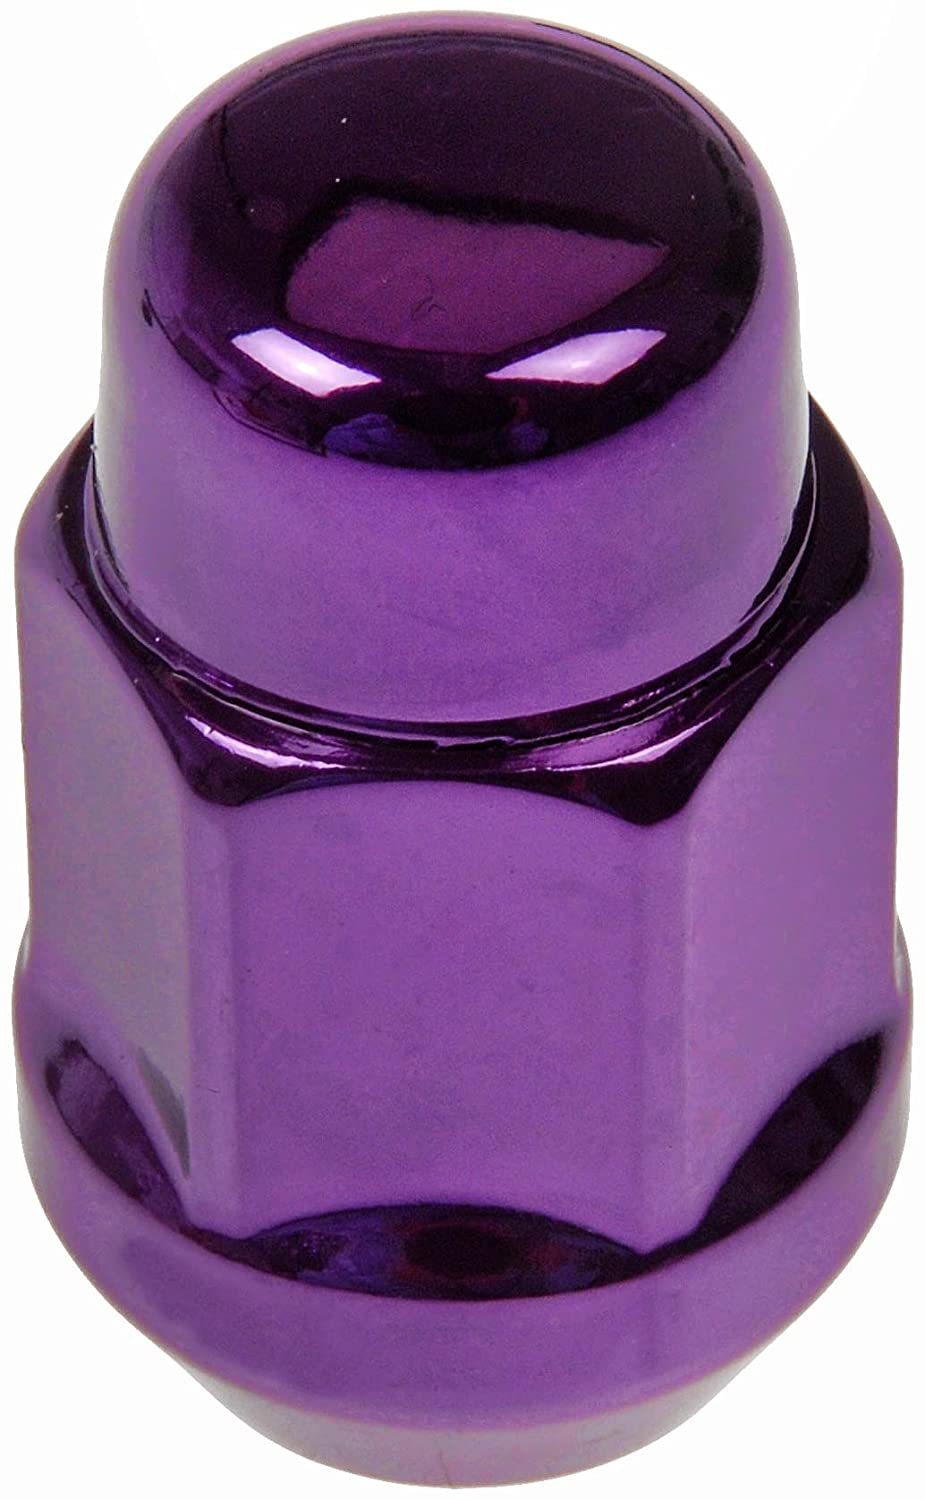 Dorman 711-335J Pack of 16 Purple Wheel Nuts and 4 Lock Nuts with Key